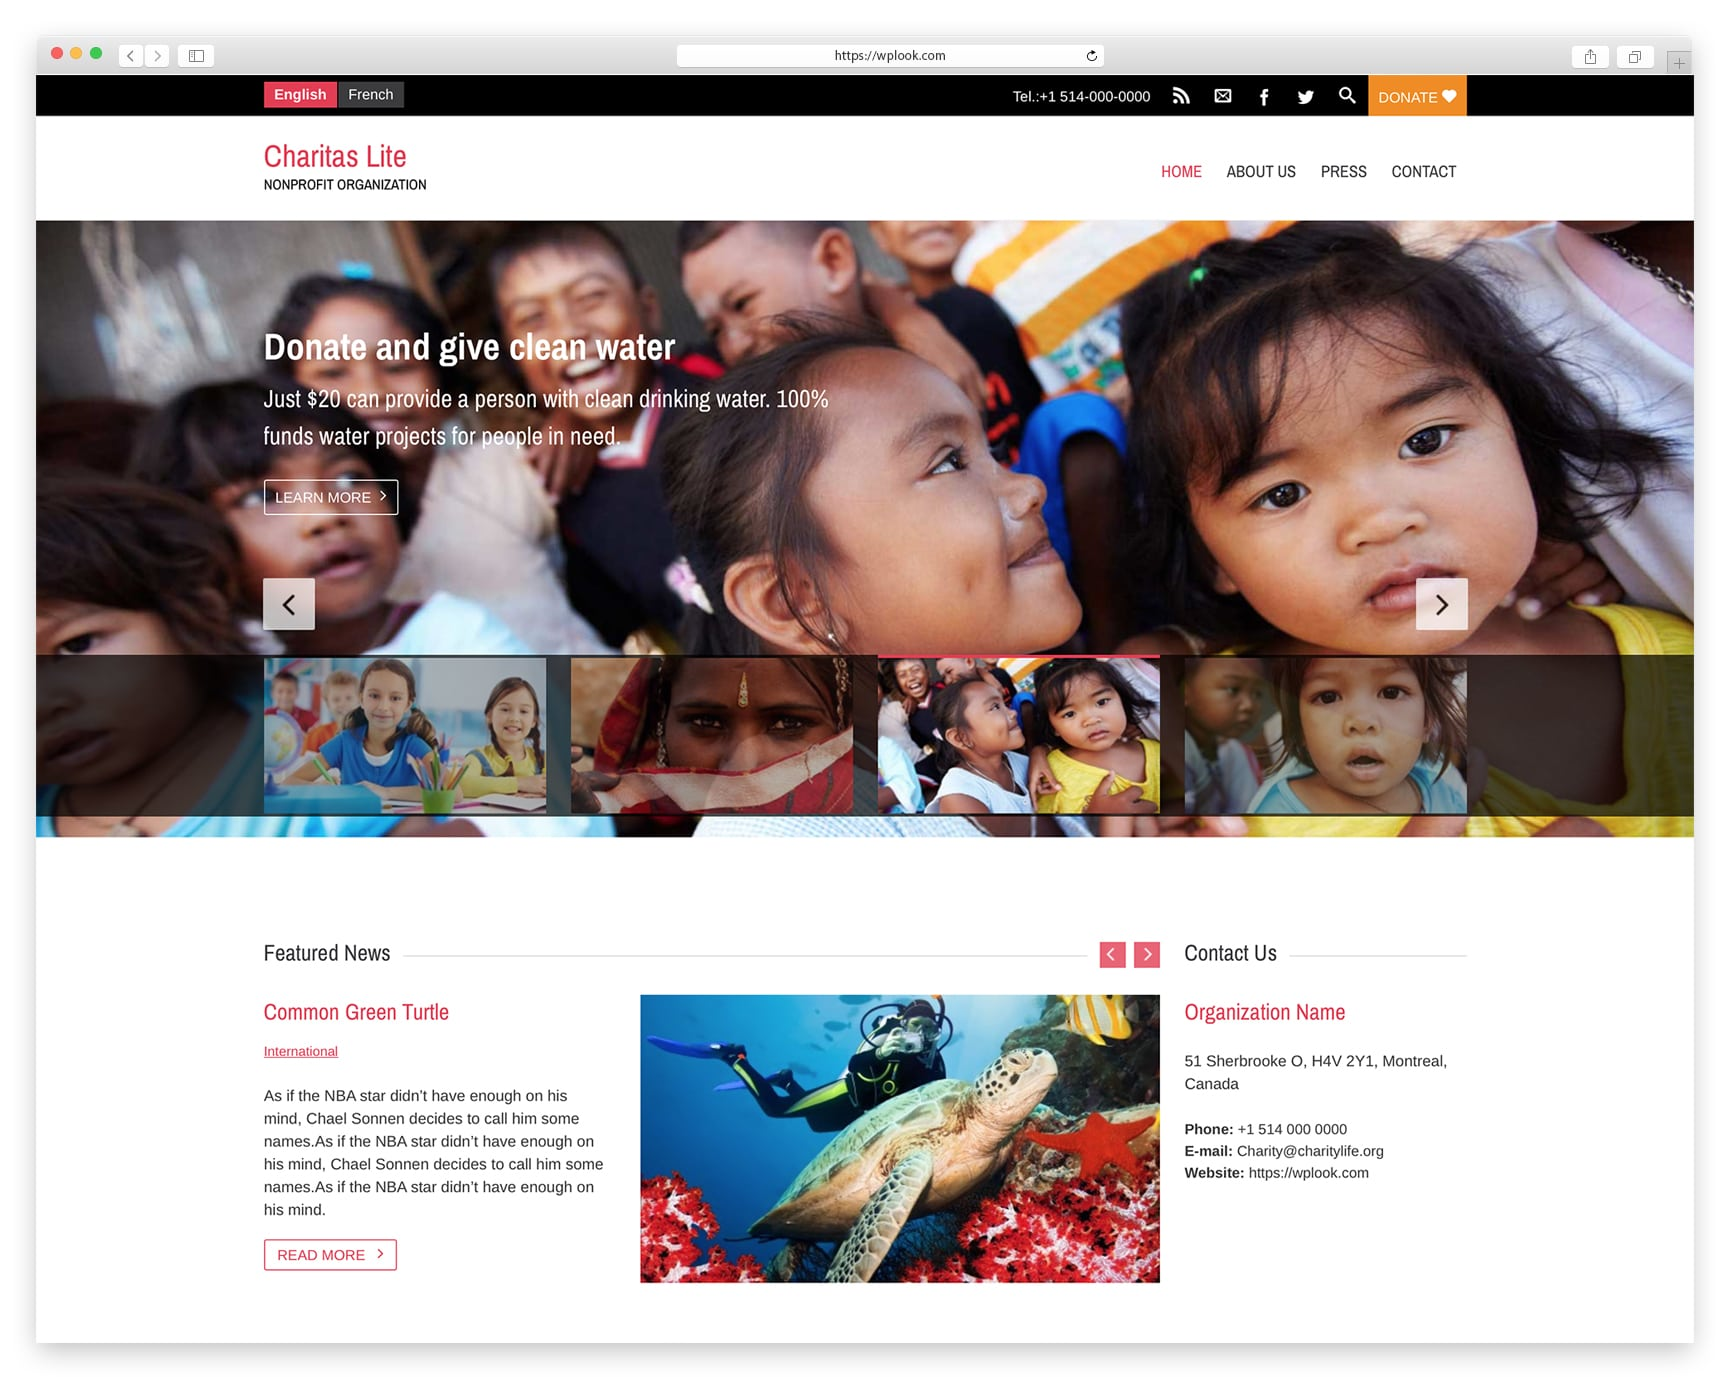 Charity Life - Free WordPress Themes for Charity